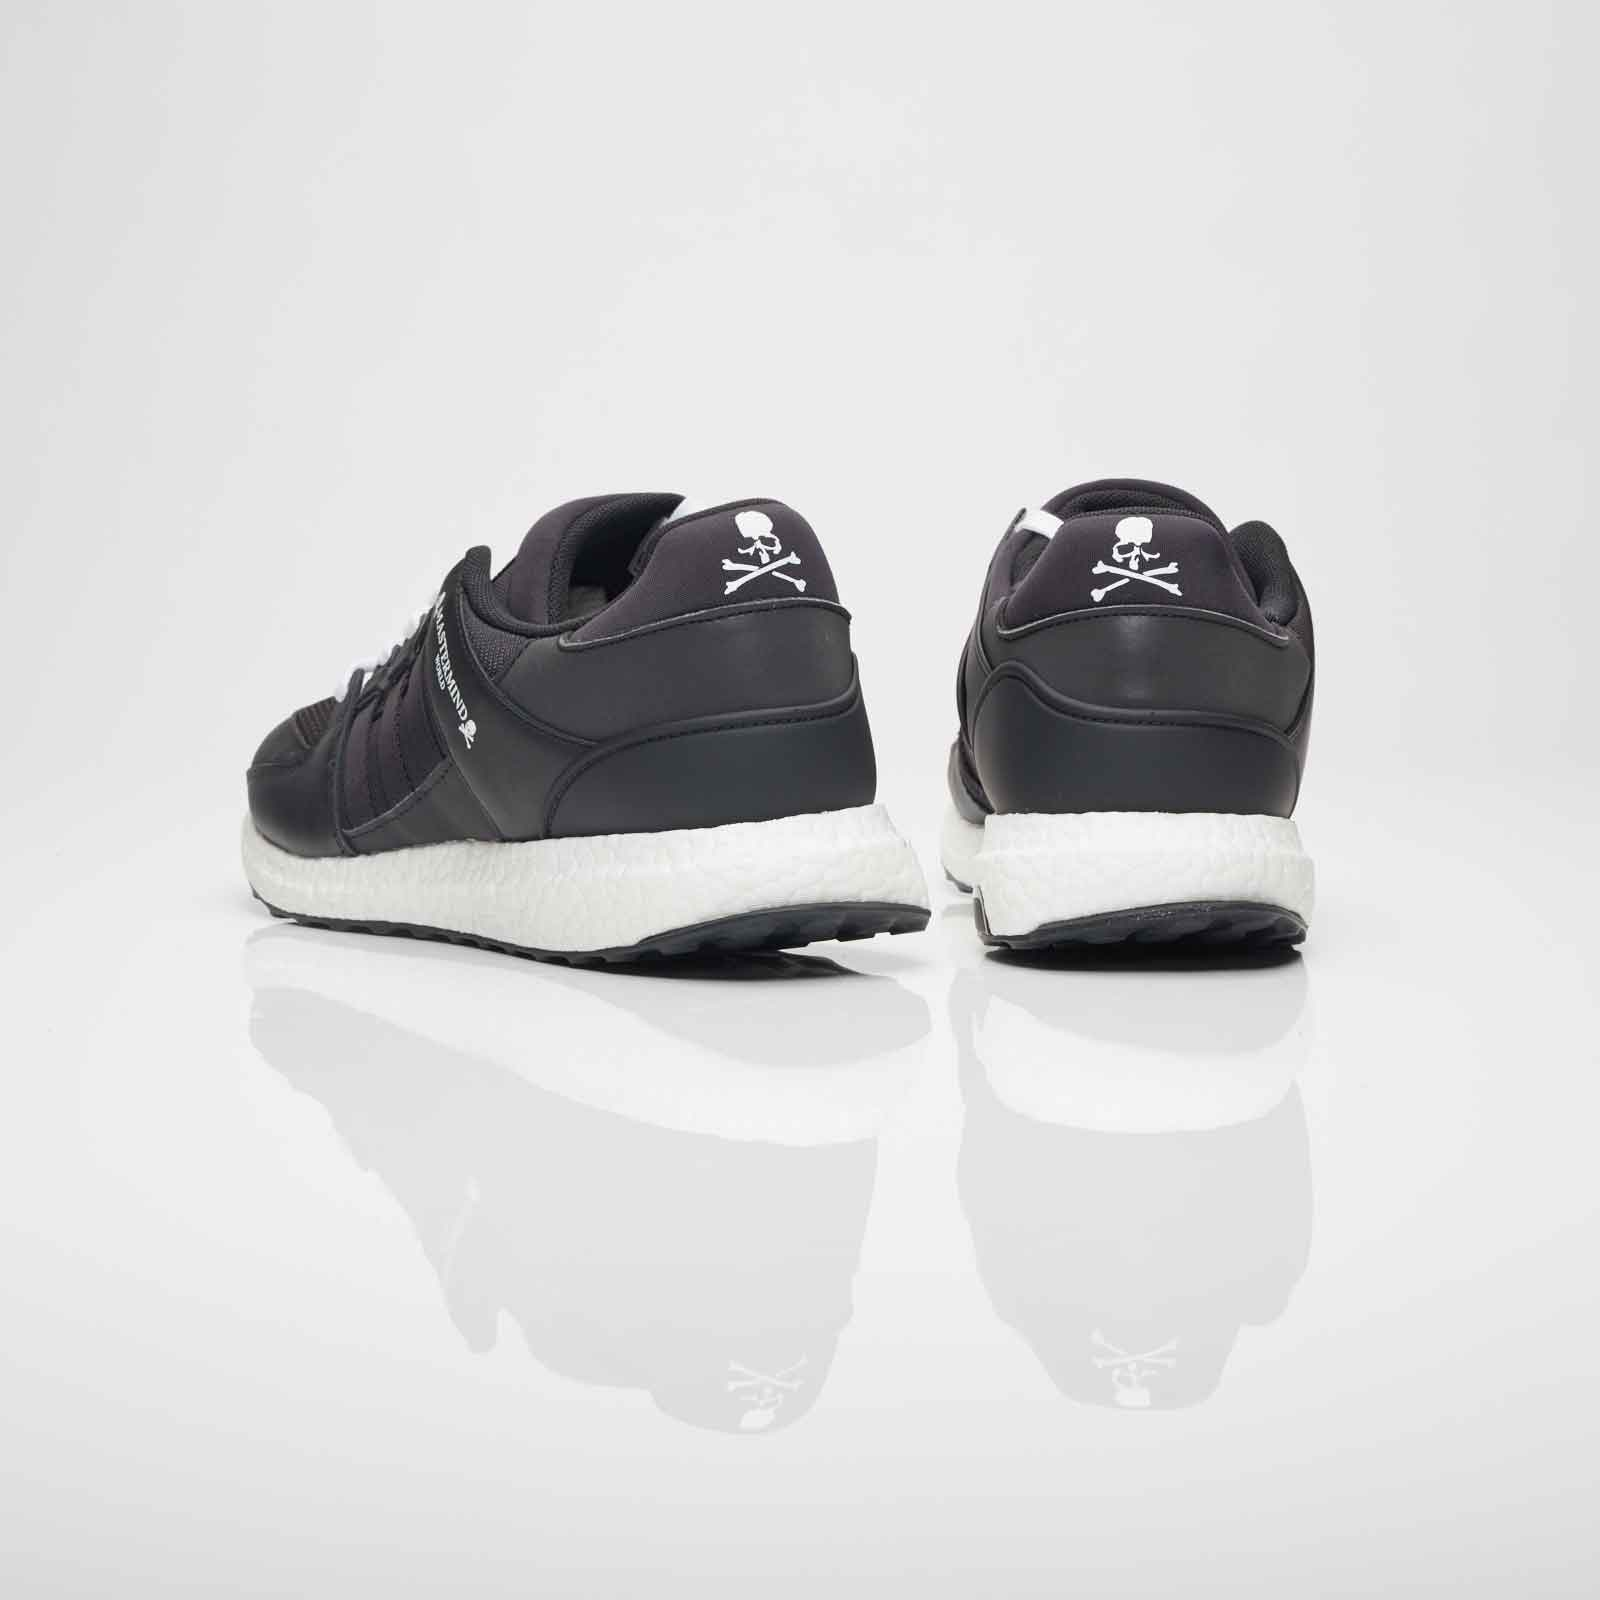 best website c1642 caf46 adidas EQT Support Ultra by Mastermind World - Cq1826 ...